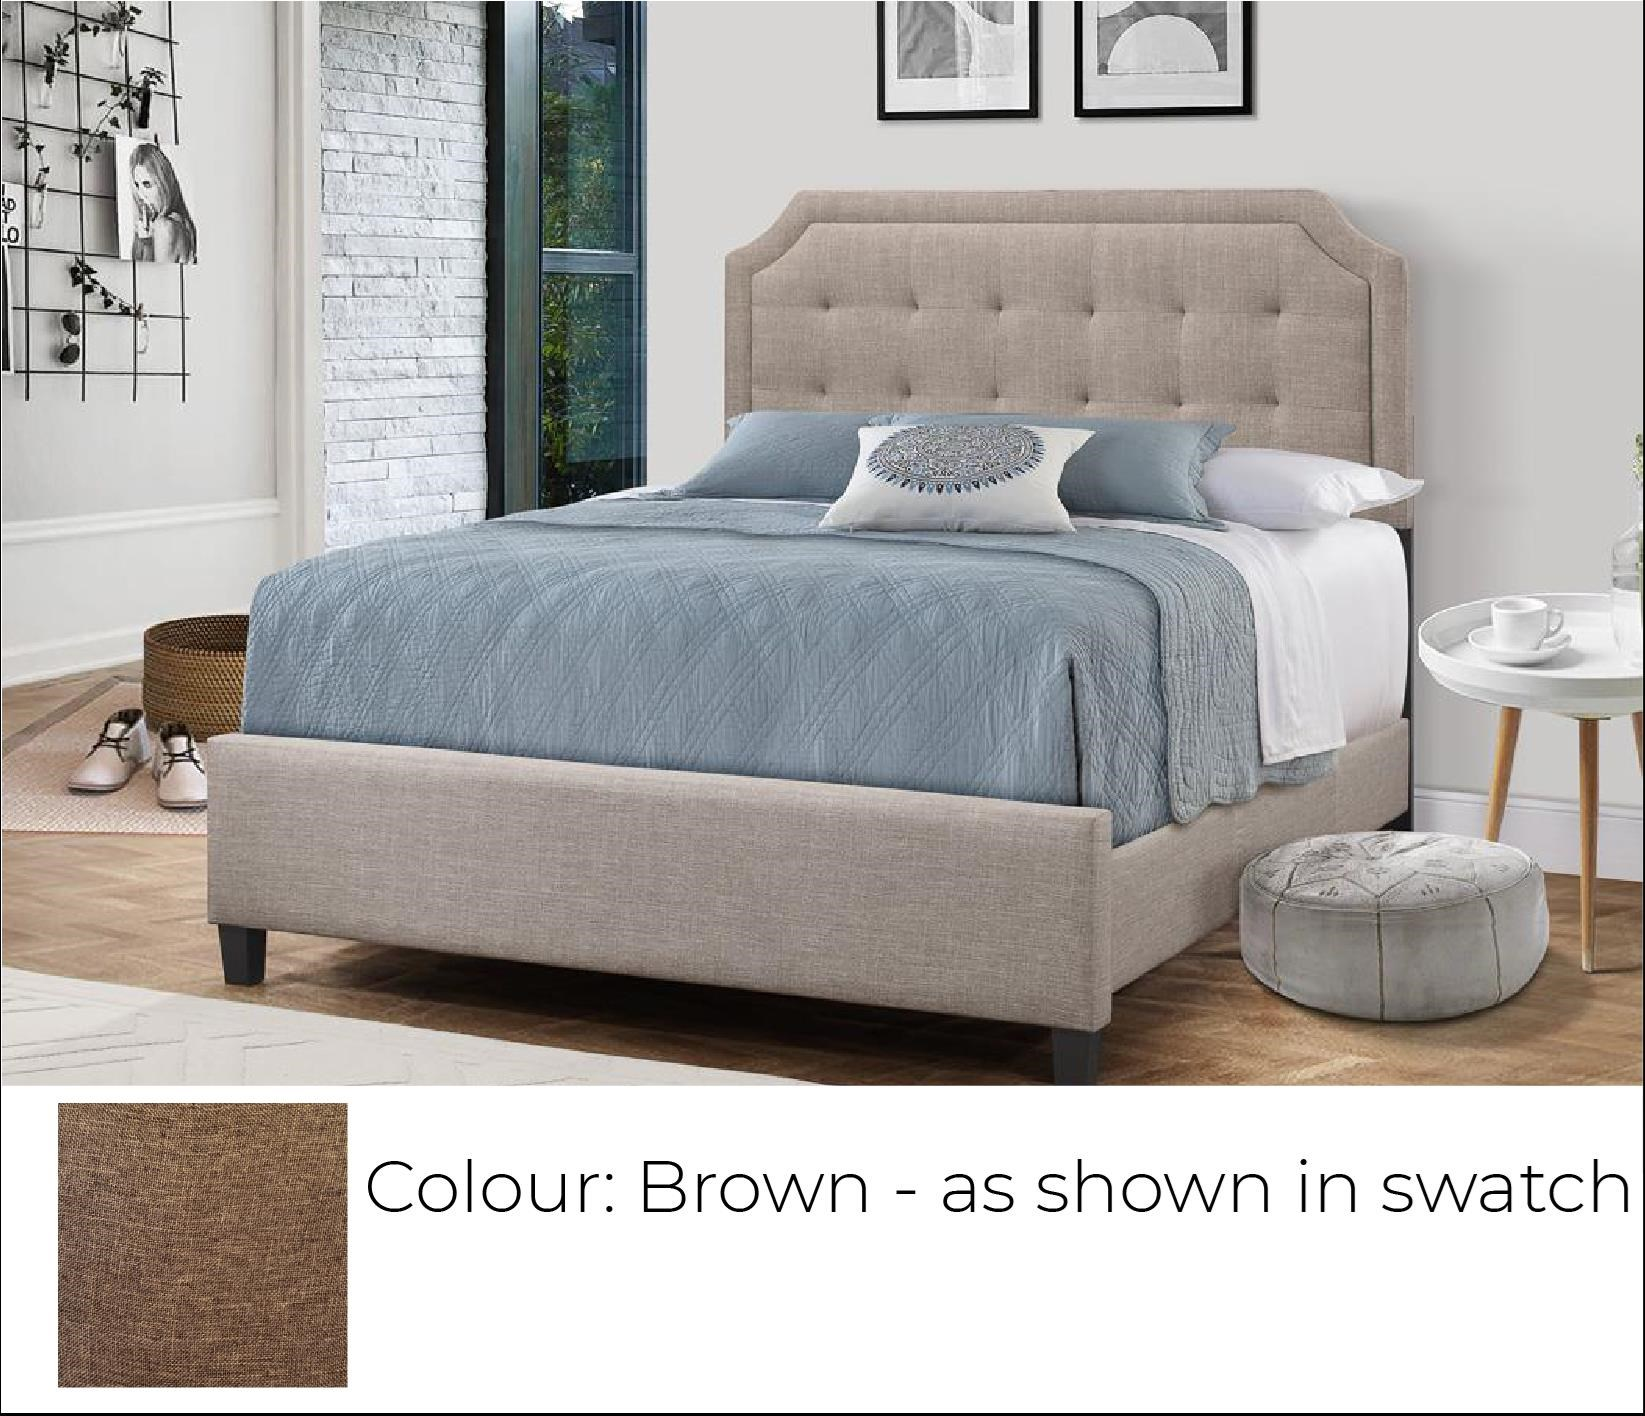 B623 - Ready to Assemble Upholstered Bed - Brown at Bennett's Furniture and Mattresses